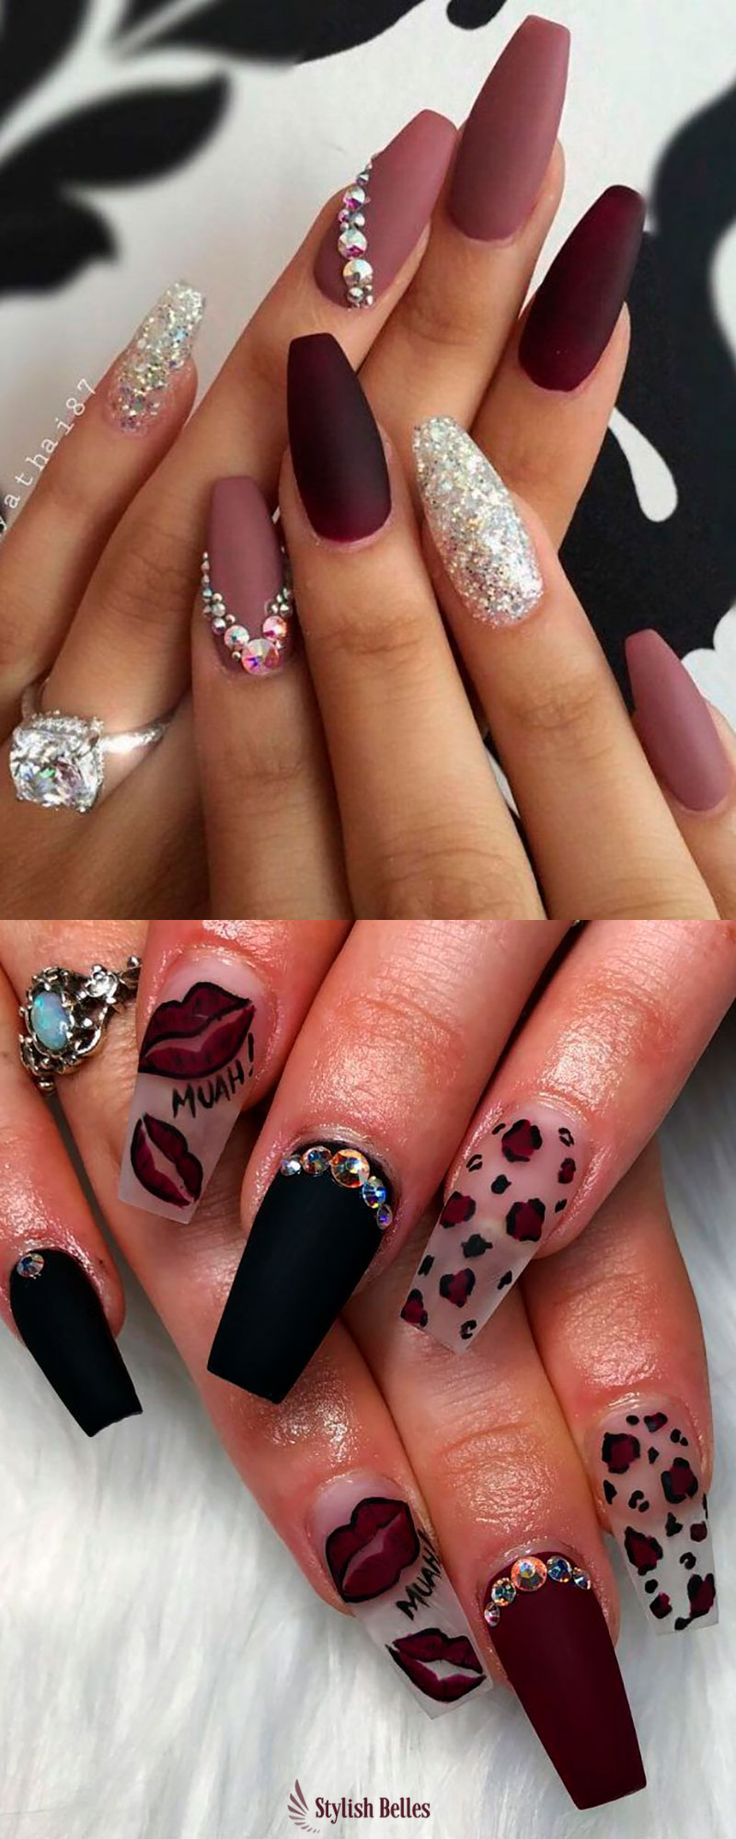 The Finest Nail Traits for Cute Fall Manicure